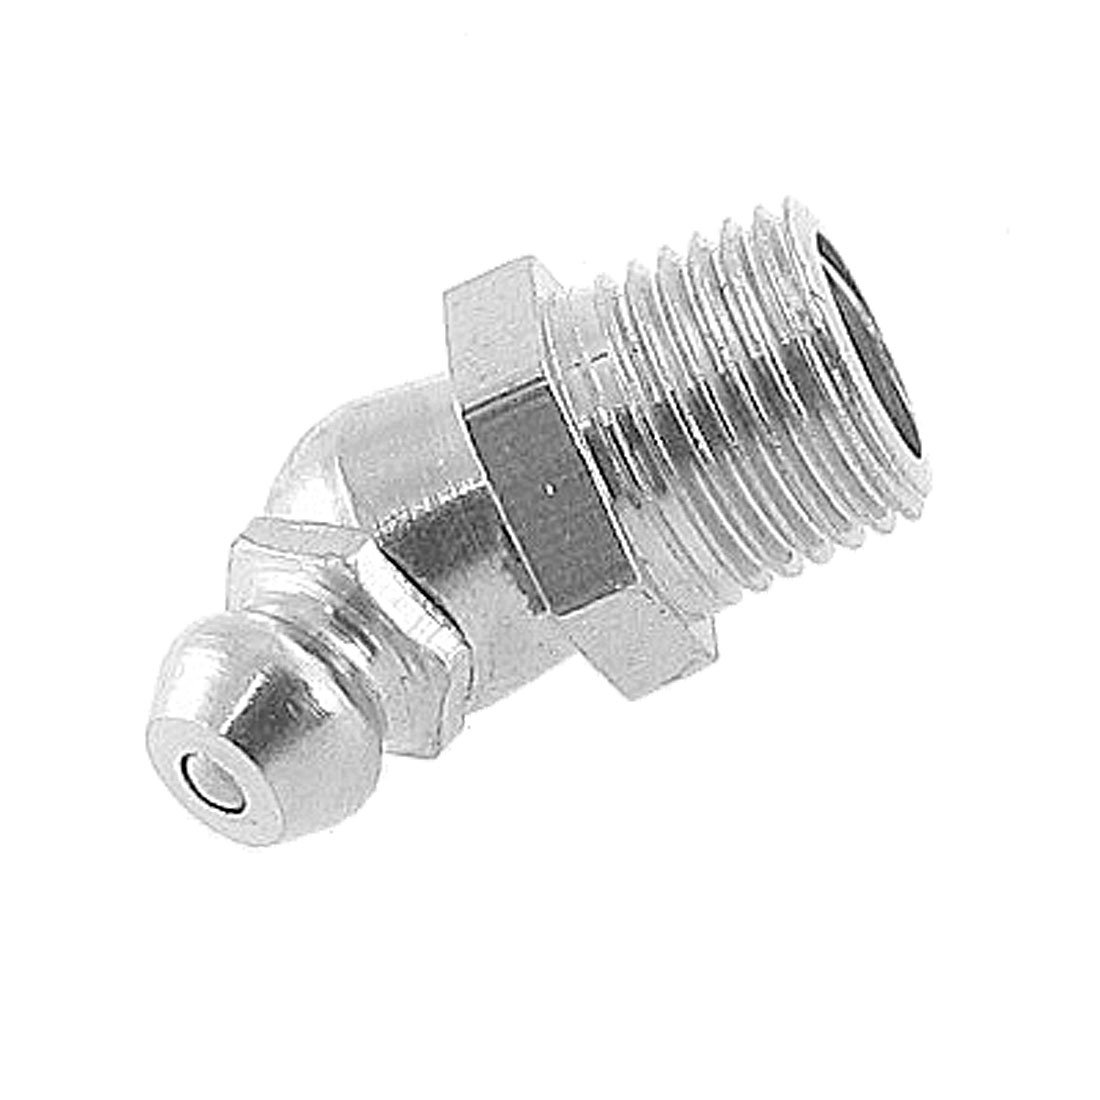 Uxcell a11121000ux0023 9.5mm 3/8' Male Thread 45 Degree Angle Zerk Fitting Grease Nipple Unknown